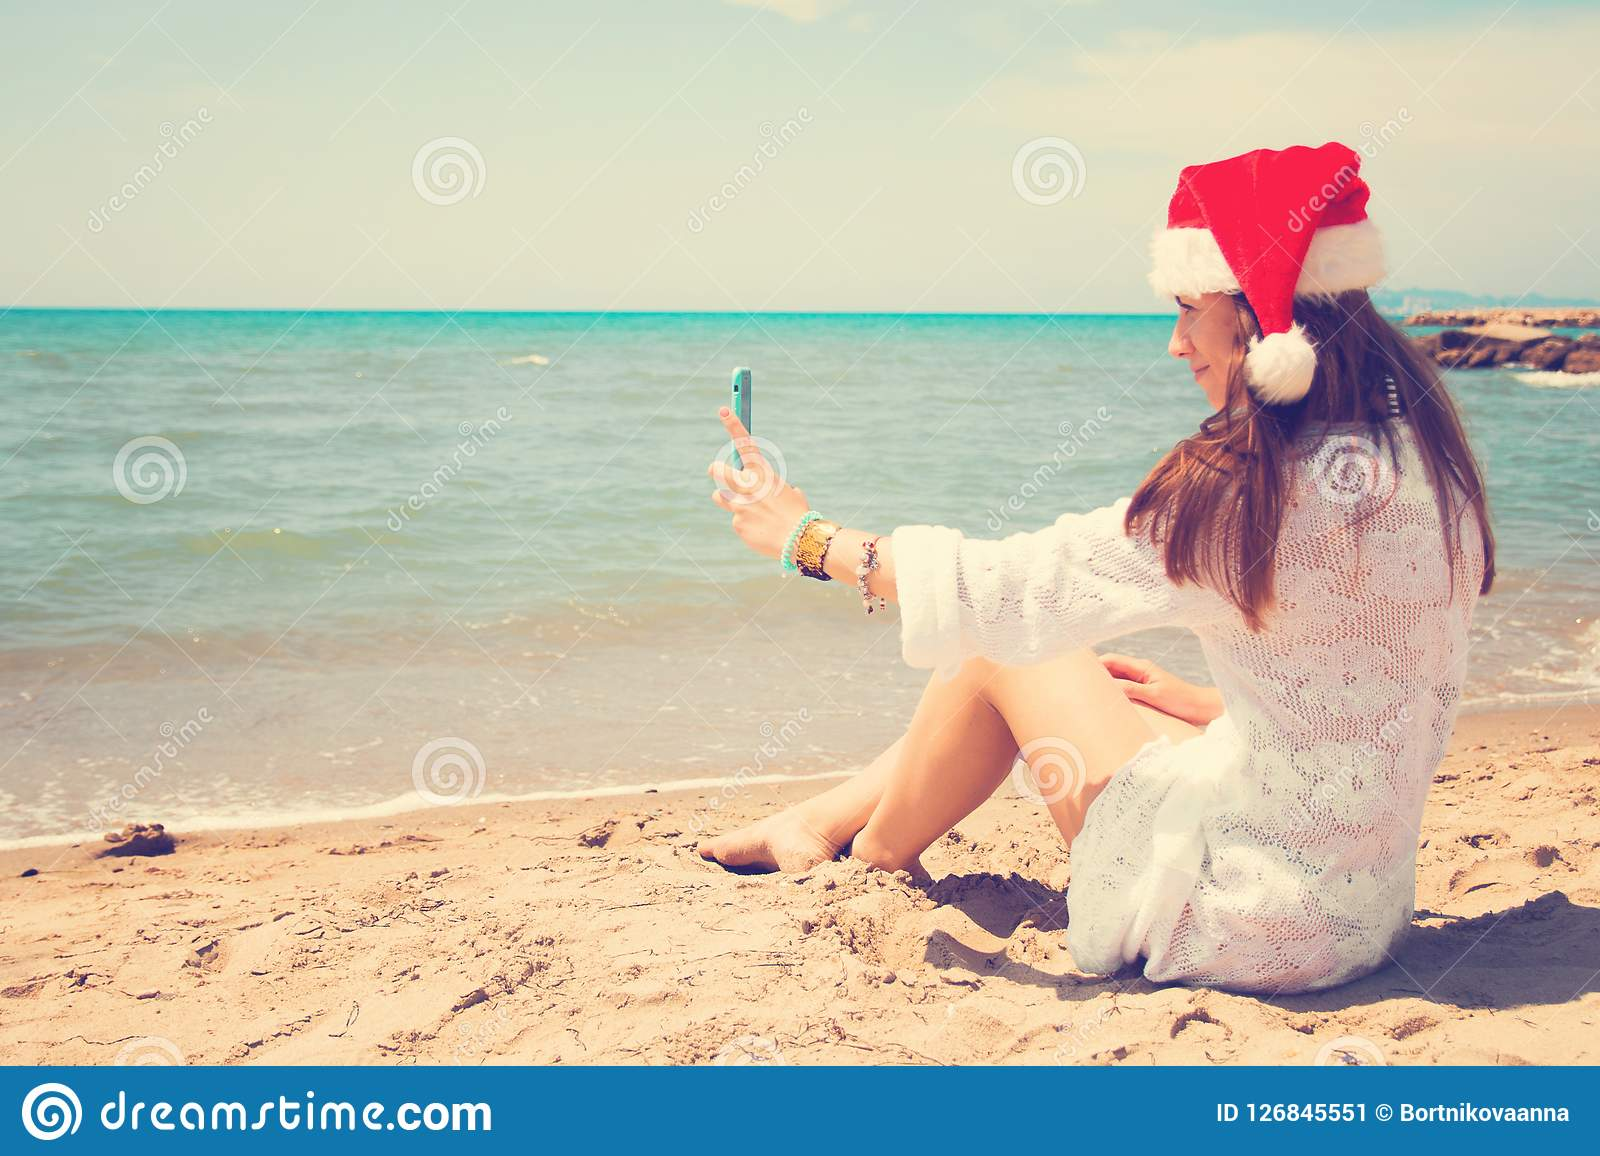 Christmas young smiling woman in red santa hat taking picture self portrait on smartphone at beach over sea background. toned